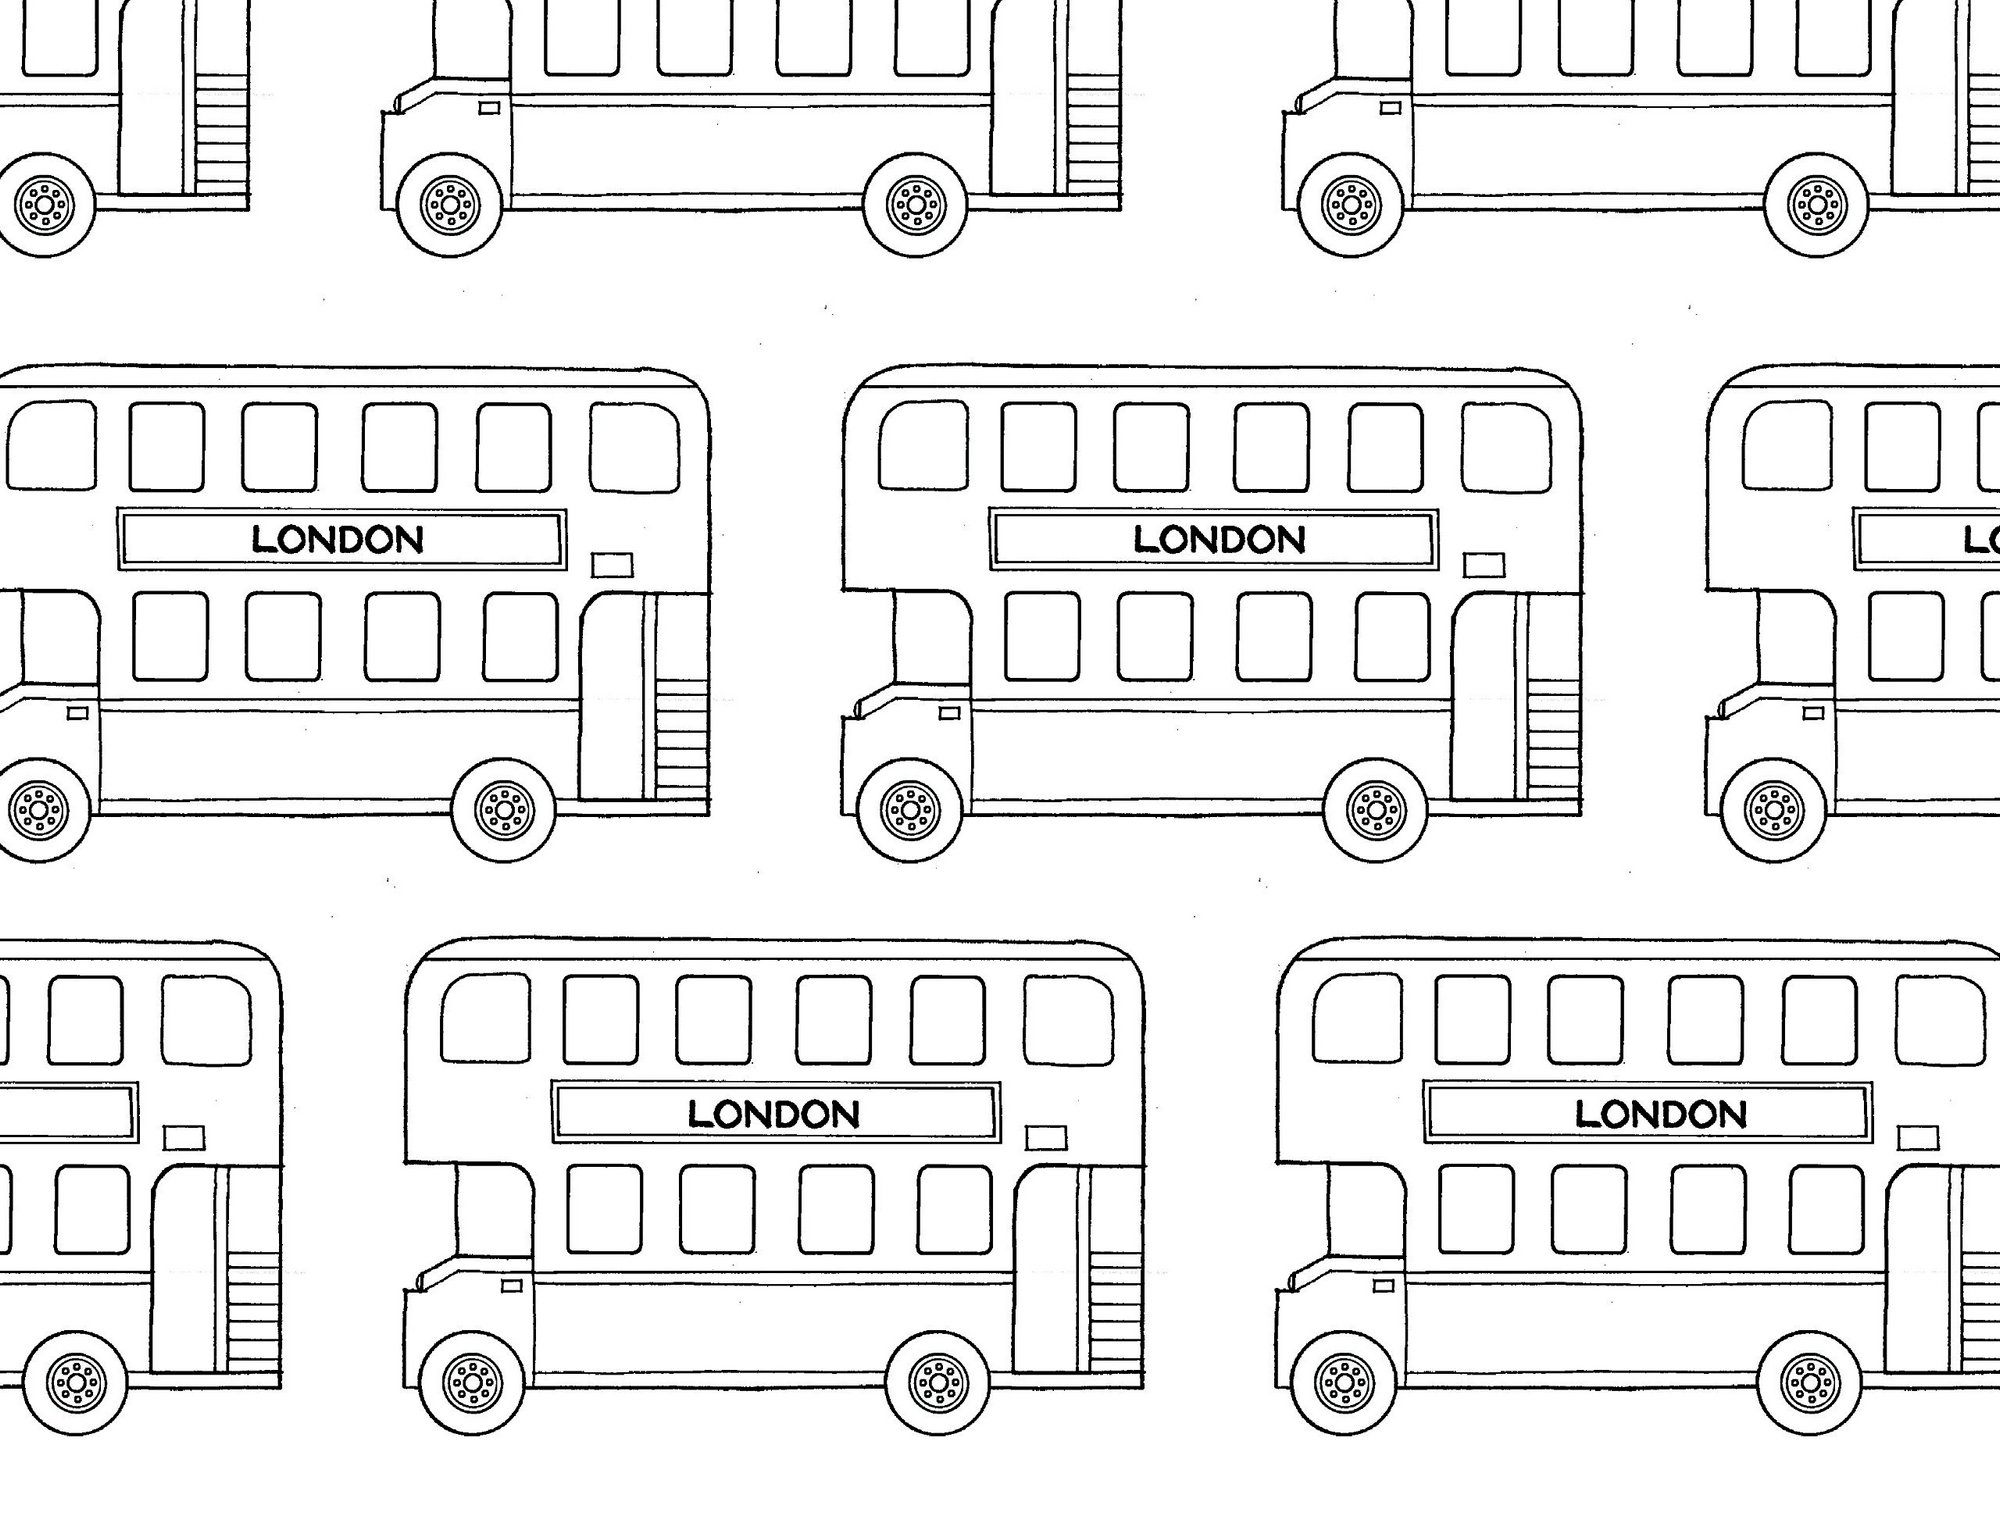 London-double-decker-buses-coloring-page